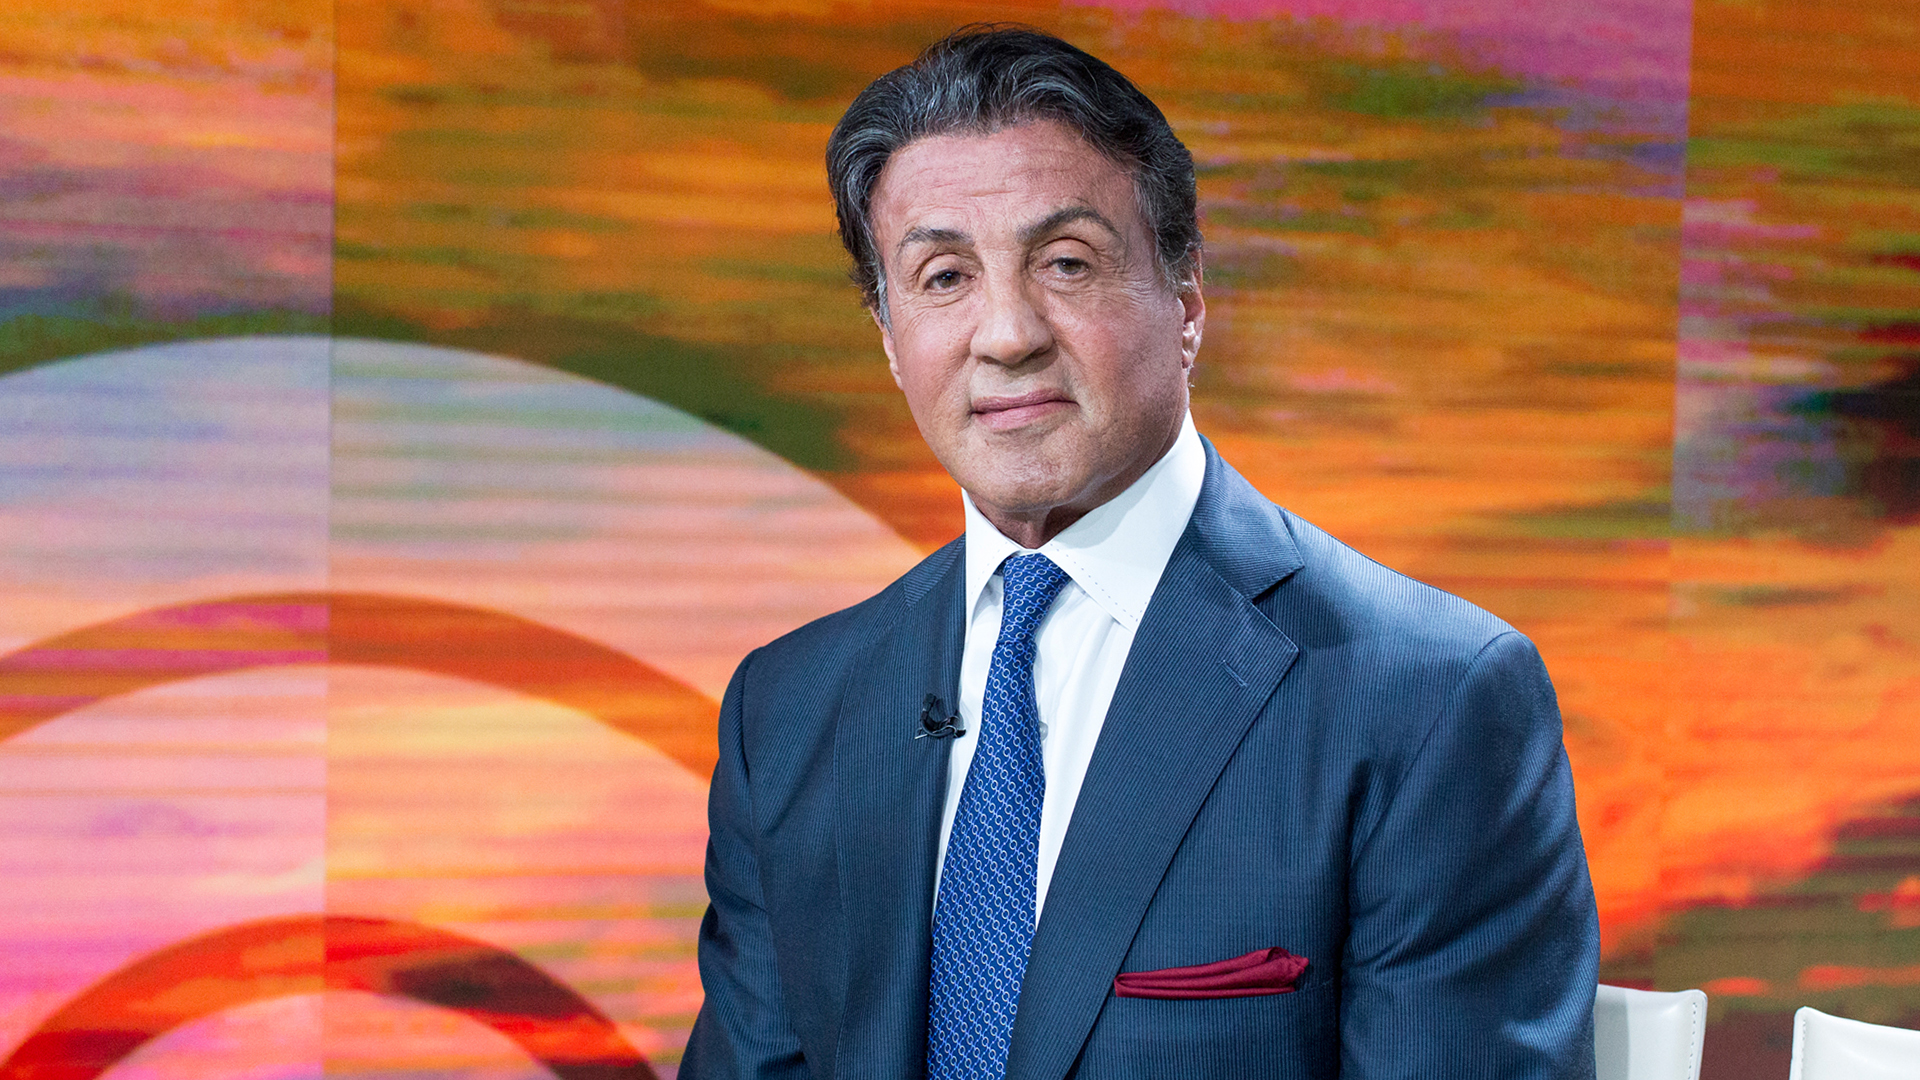 sylvester stallone rockysylvester stallone film, sylvester stallone 2016, sylvester stallone filmi, sylvester stallone 2017, sylvester stallone filmleri, sylvester stallone kino, sylvester stallone movies, sylvester stallone height, sylvester stallone biography, sylvester stallone mother, sylvester stallone family, sylvester stallone filme, sylvester stallone wife, sylvester stallone cobra, sylvester stallone died, sylvester stallone 2016 film, sylvester stallone son, sylvester stallone wikipedia, sylvester stallone rocky, sylvester stallone's daughters